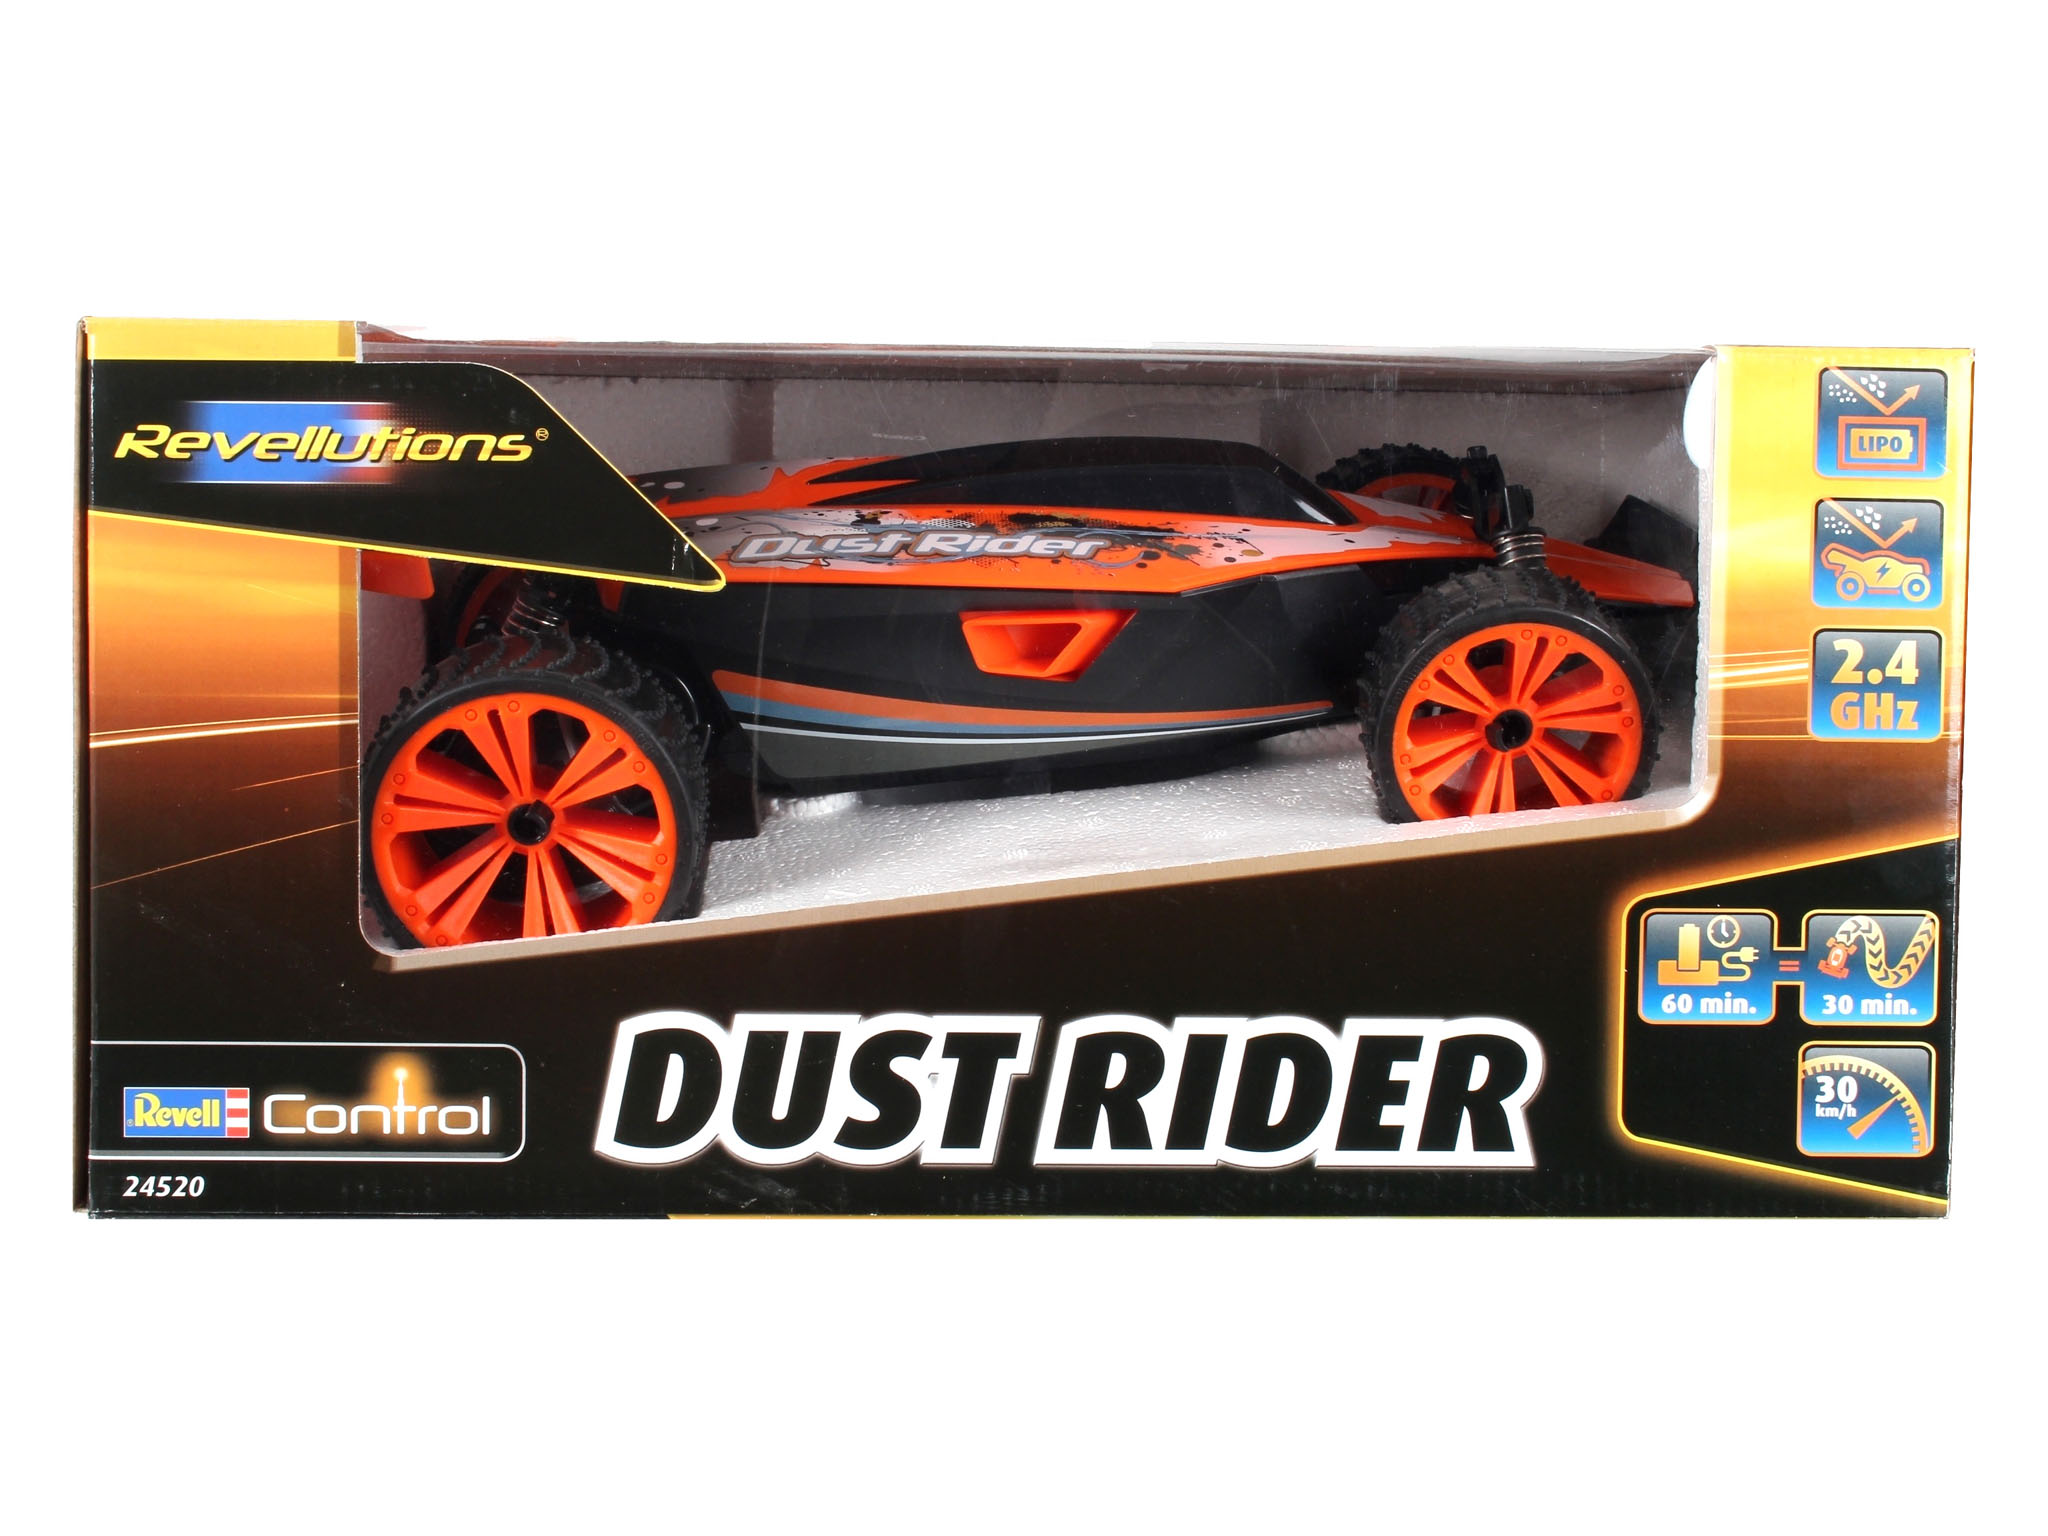 REVELL 24520 RC Dust Rider Buggy GHz,orange/schw 1:14